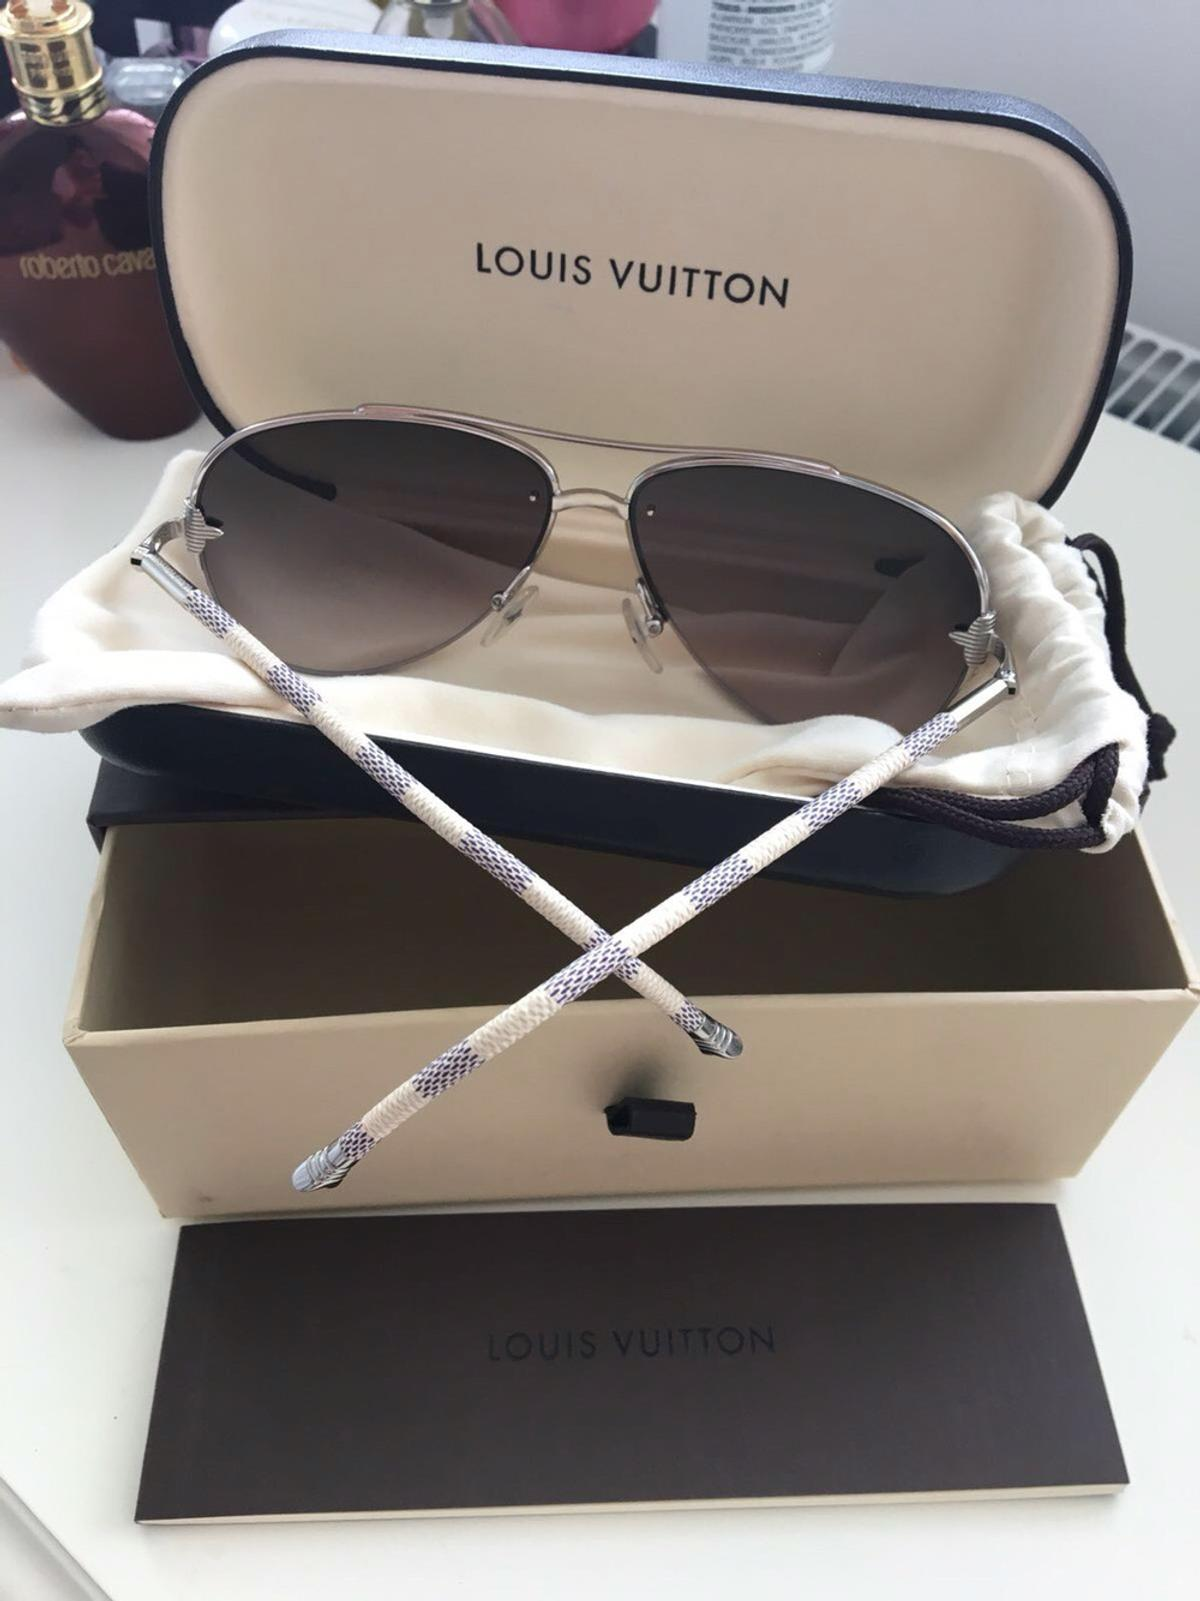 86a62cd9fcb97 Louis Vuitton PETITE VIOLA PILOTE sunglasses in KT1 East Molesey for ...